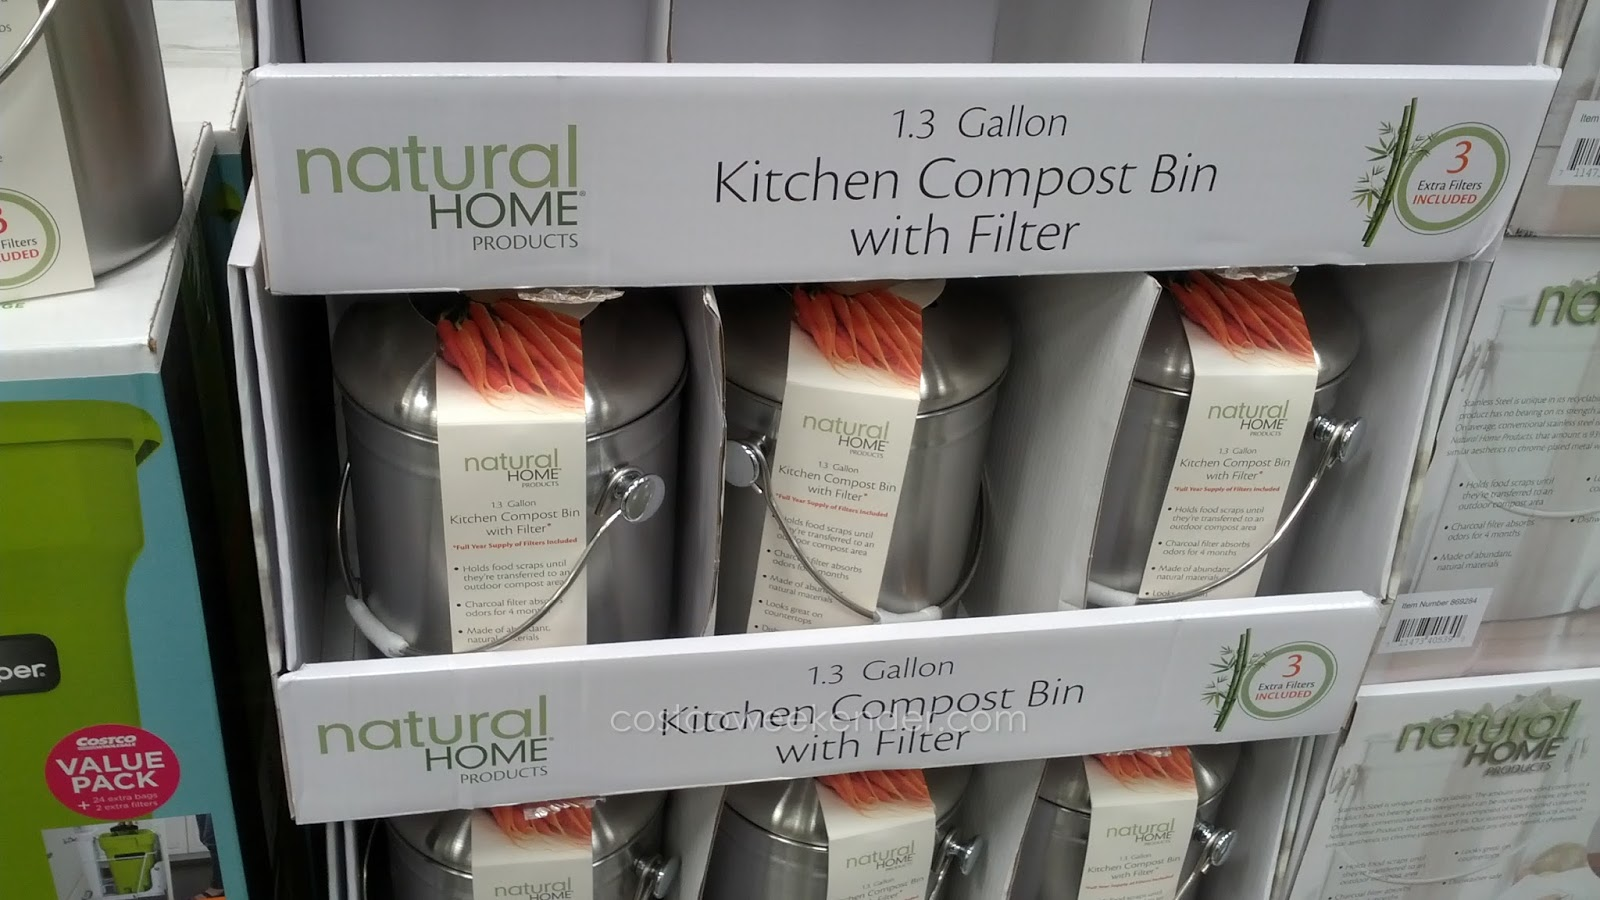 Natural Home Kitchen Compost Bin For Your Food And Kitchen Scraps